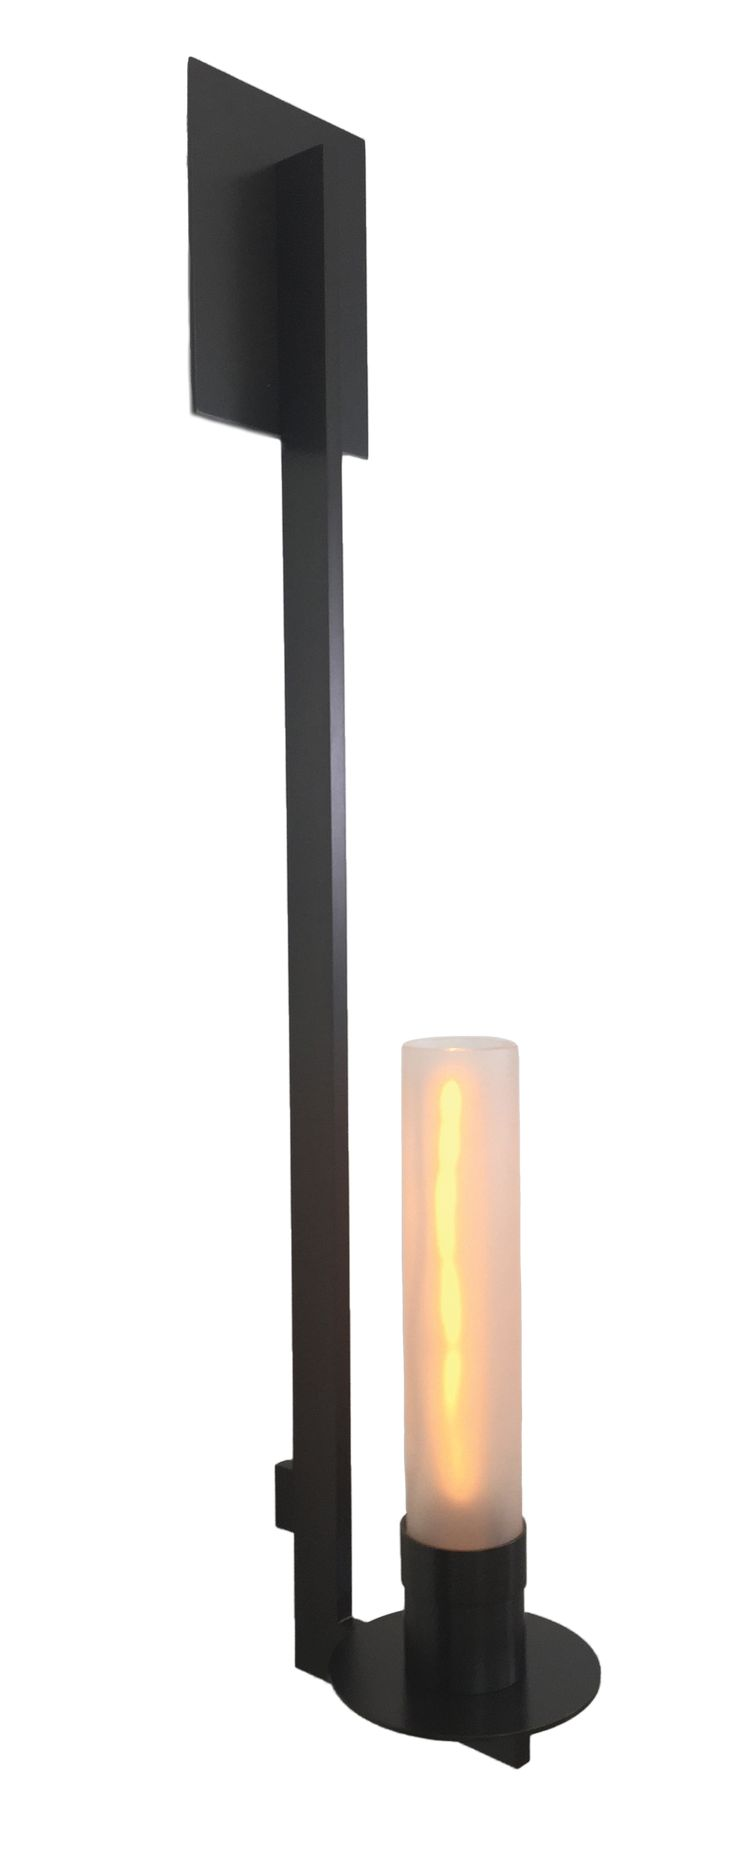 Chloe loft industrial 2 light oil rubbed bronze wall sconce free - Buy 3137 Candela Wall Sconce By Phoenix Day Made To Order Designer